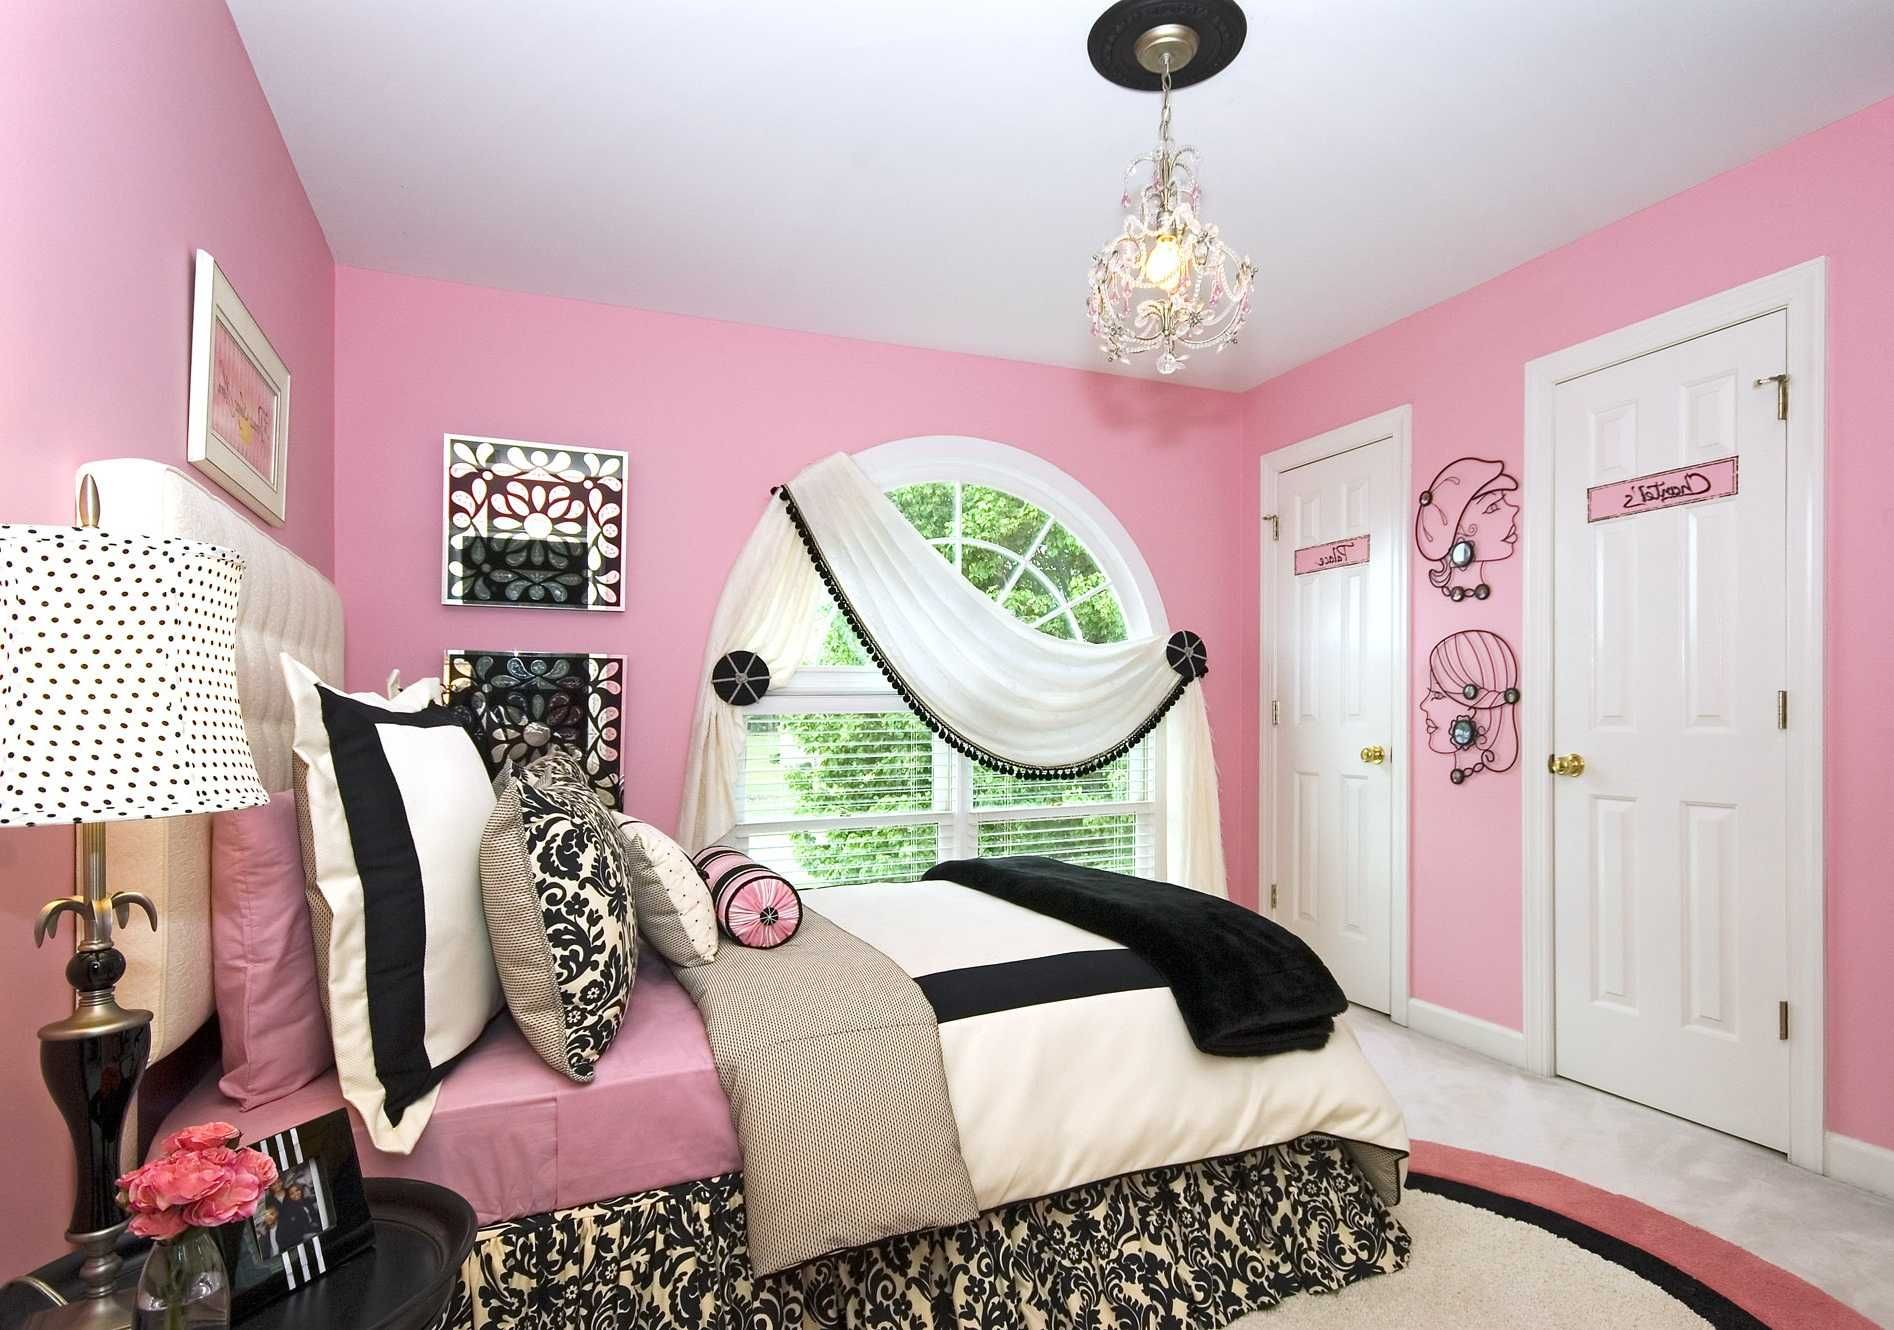 13 Year Old Cute Room Decor Lovely 13 Year Old Cute Room Decor Birthday Cakes Cool Top For 15 Year Olds Cute Girly Bedroom Pink Bedroom For Girls Girl Room